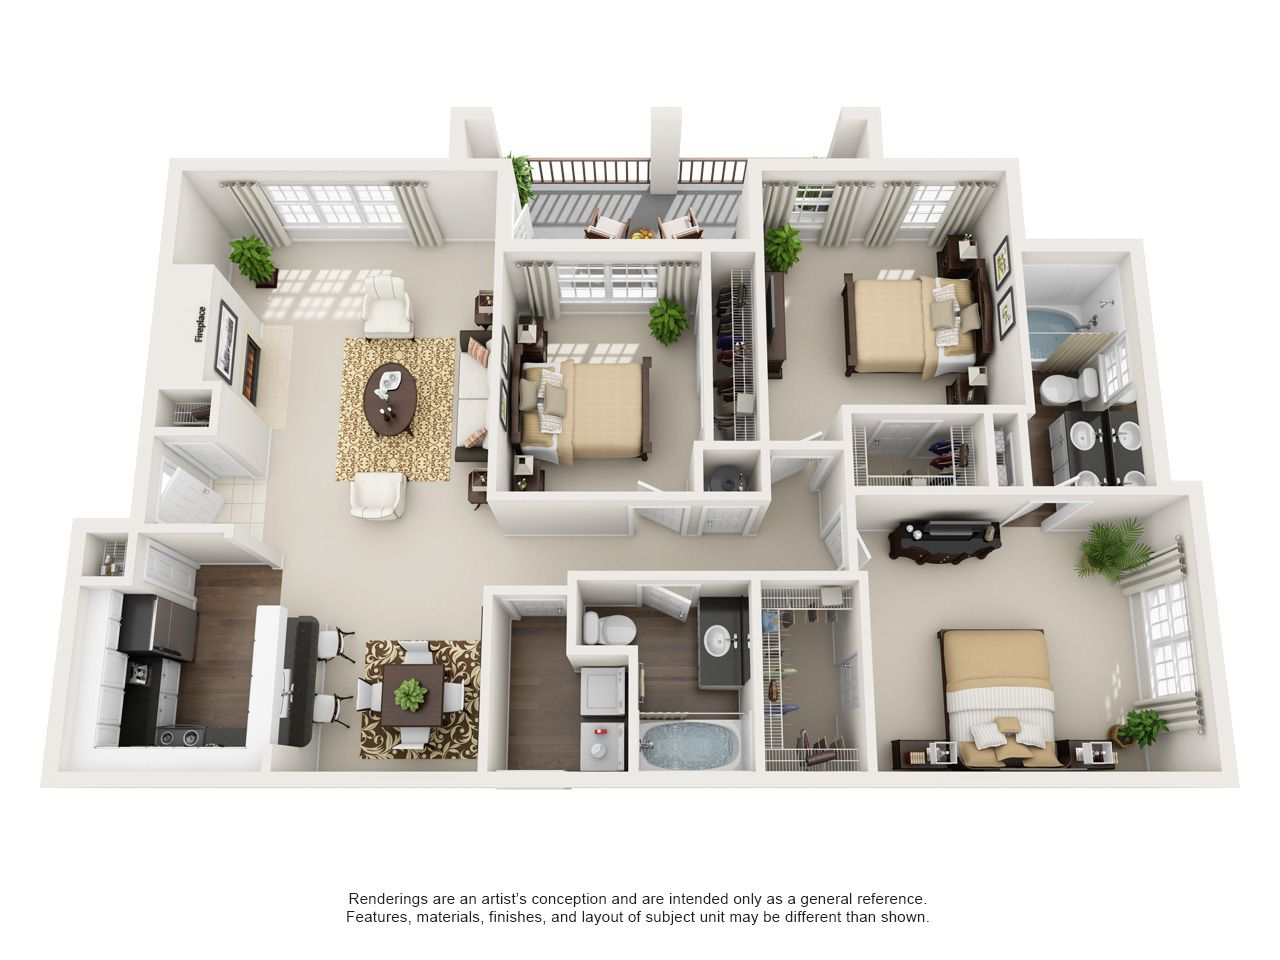 Can You Get An Apartment At 18 In Texas 1 2 3 Bedroom Apartments In Euless Tx Floor Plans Bedroom House Plans Bedroom Floor Plans